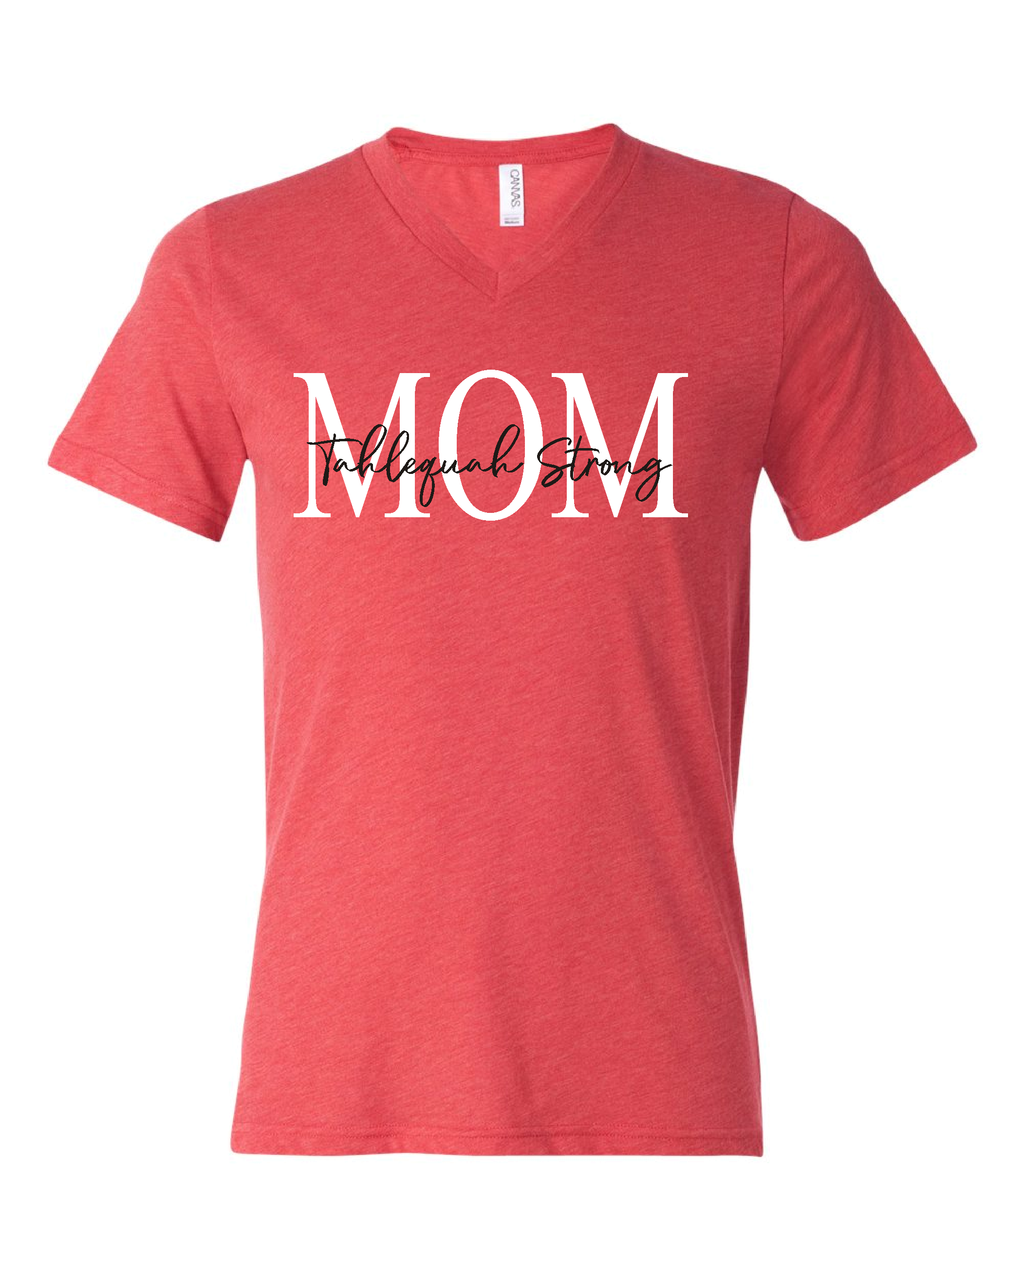 Tahlequah Strong MOM Red V-Neck